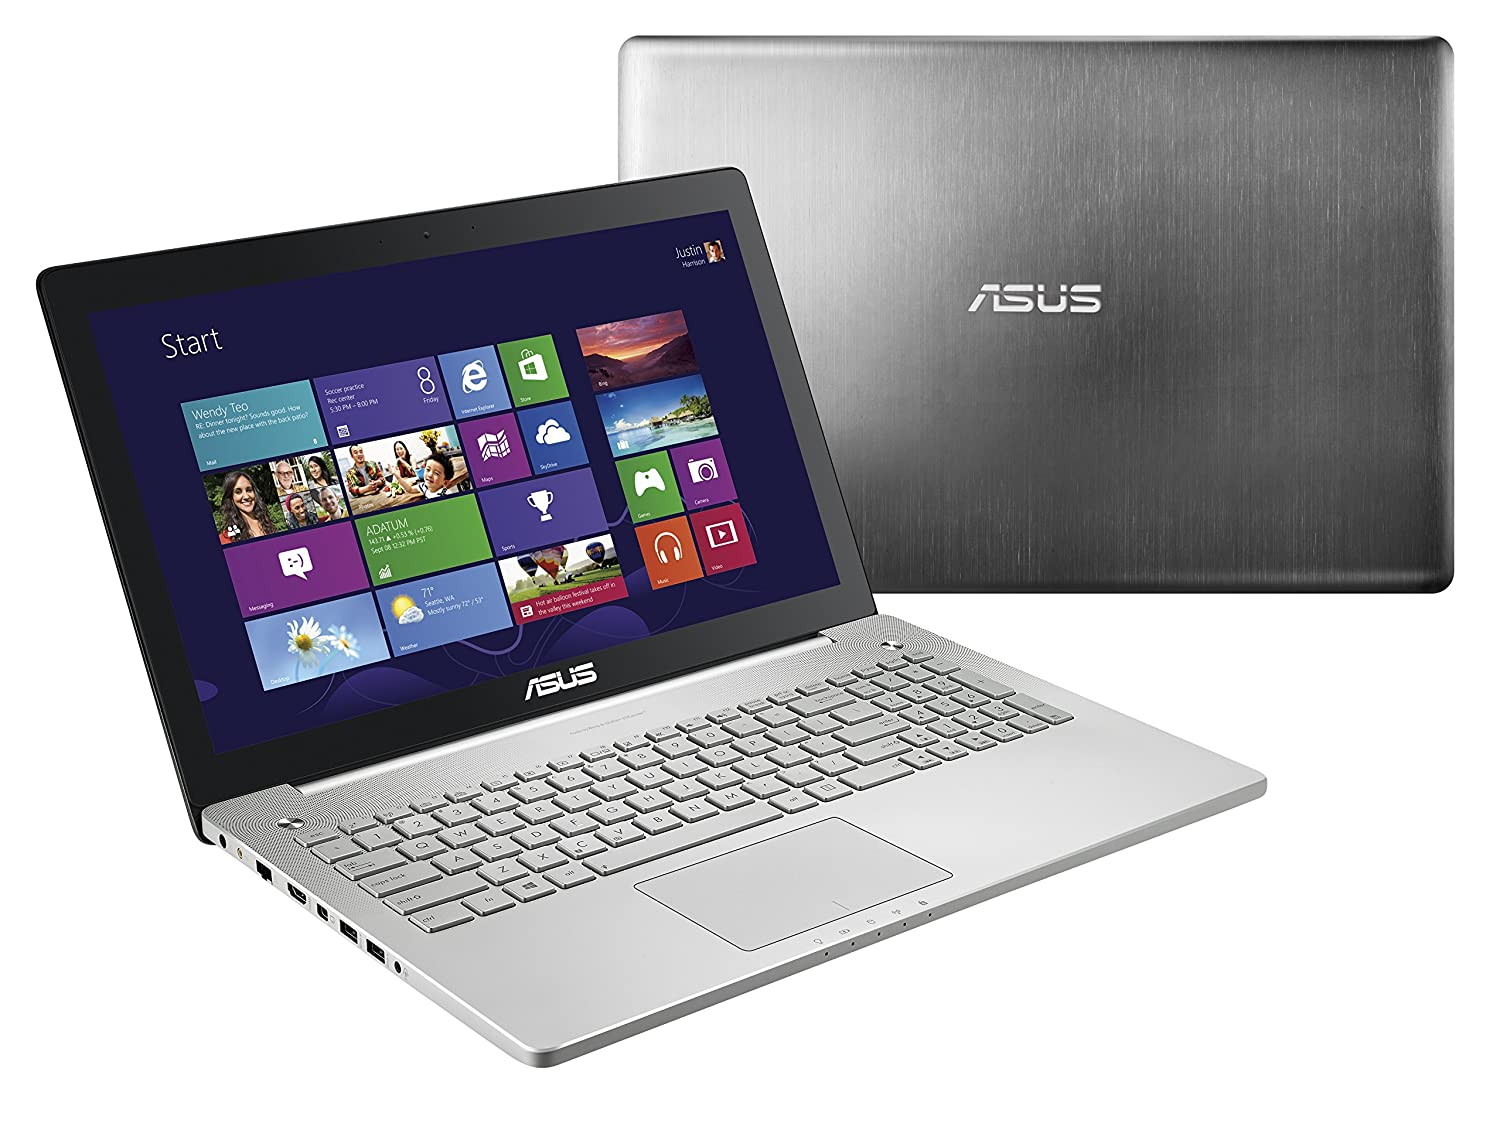 ASUS N550J 15.6-Inch Laptop (Intel Core i7-4700HQ 2.4GHz Processor, 1TB Hard Drive, 8GB RAM, Windows 8.1 64-bit) Silver Grey